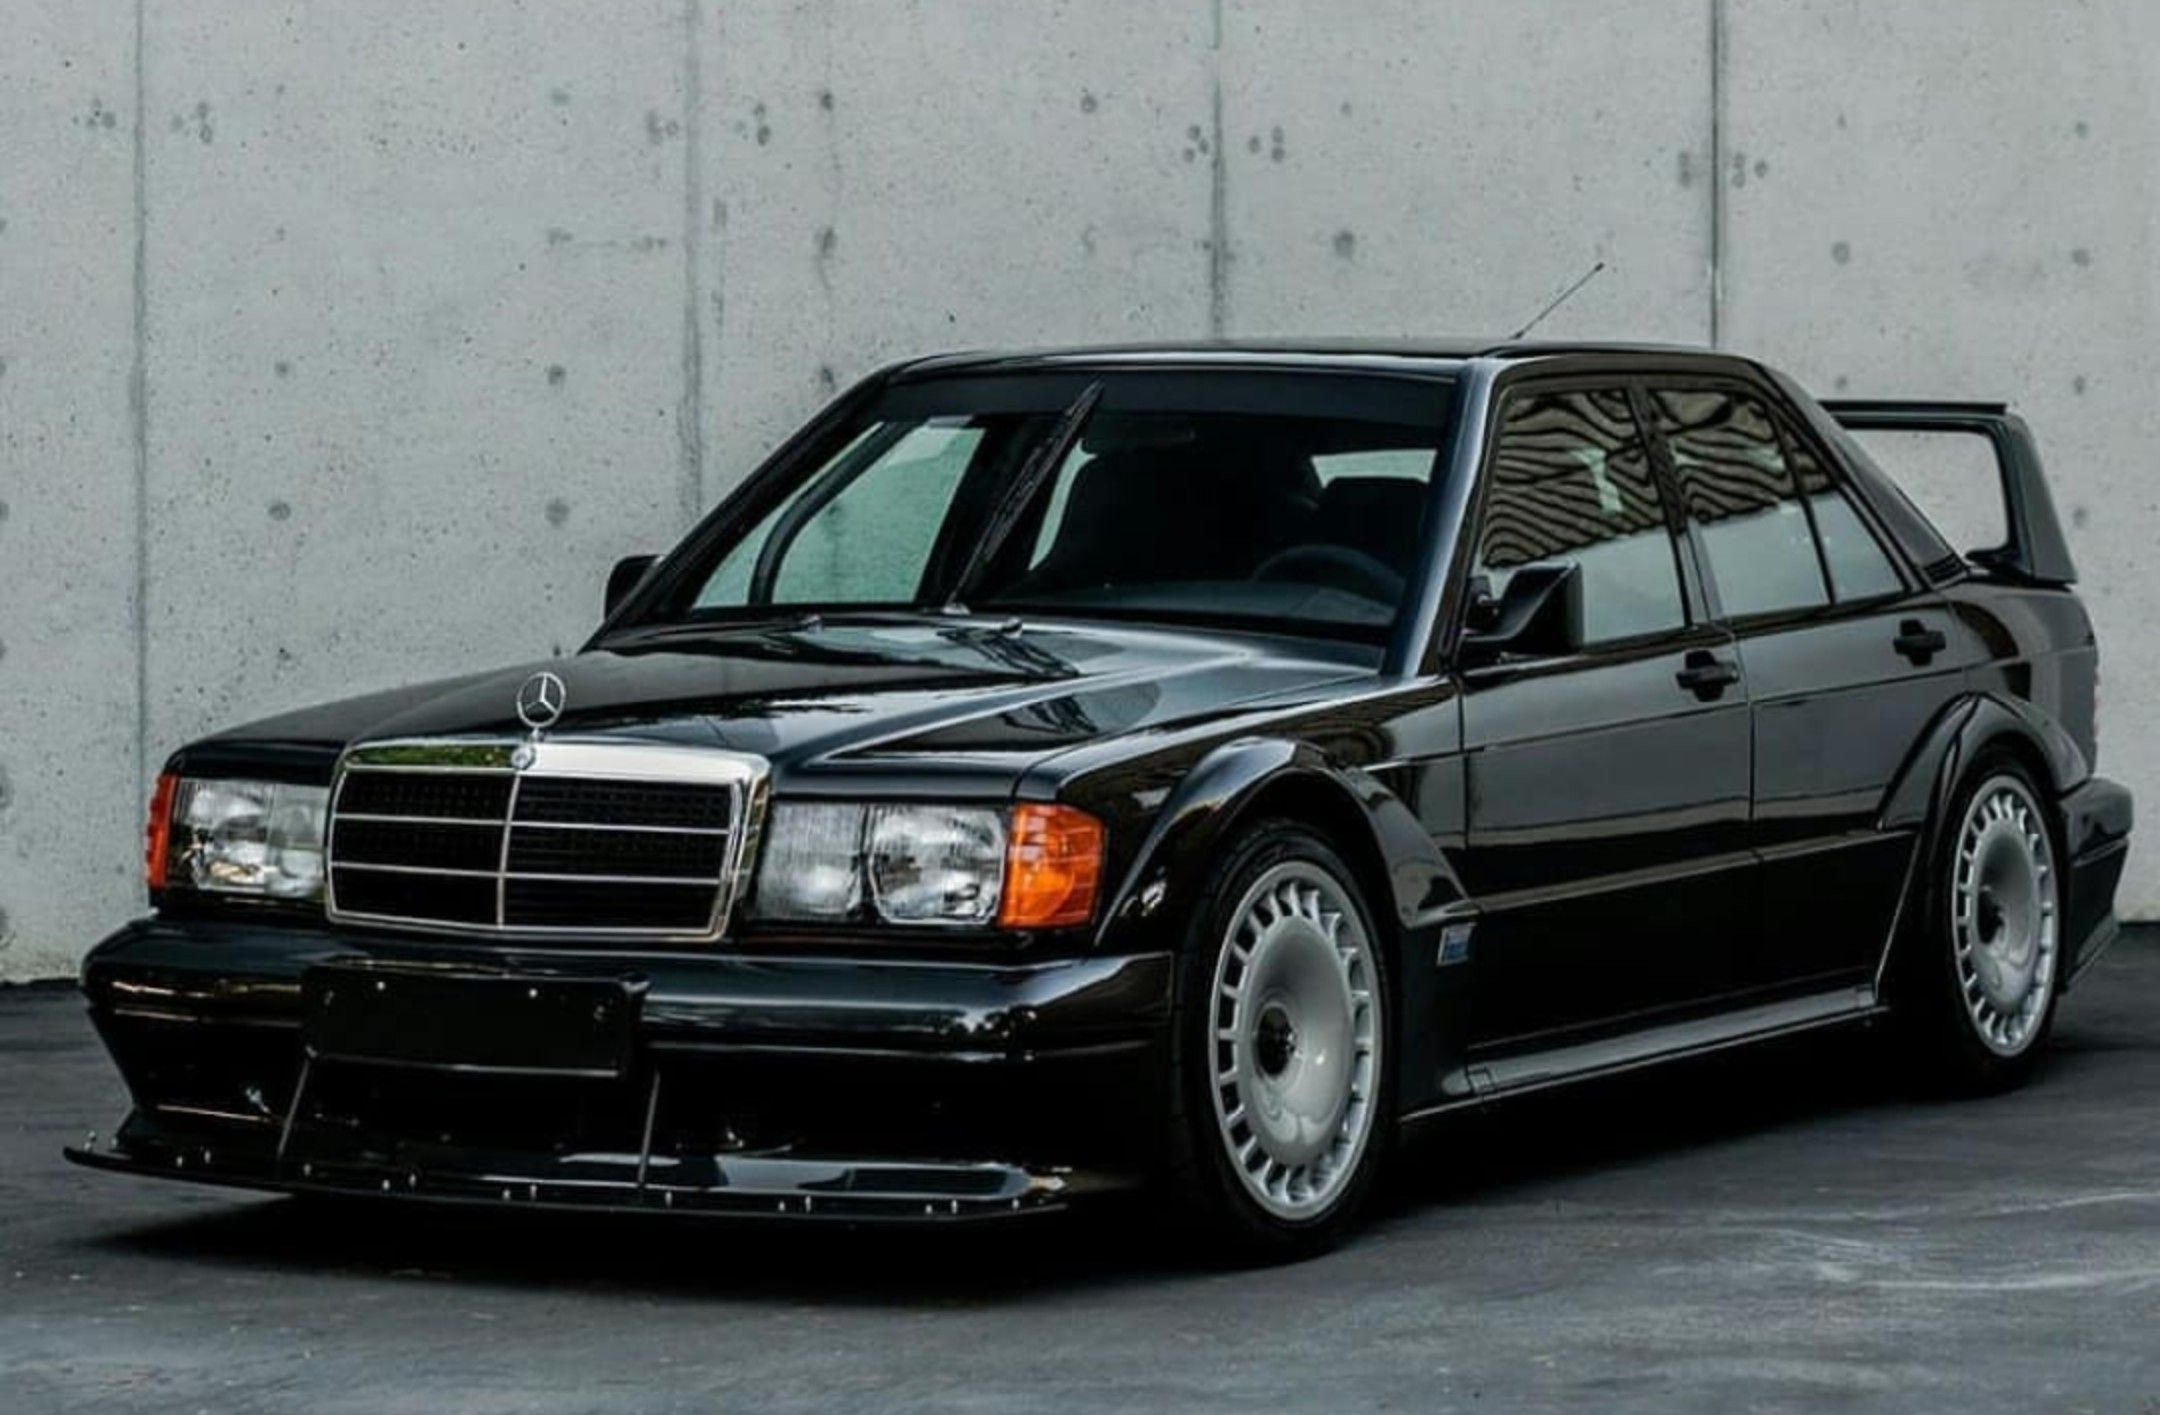 Pin By Chebon On Cars Mercedes Benz Benz Mercedes Benz 190e